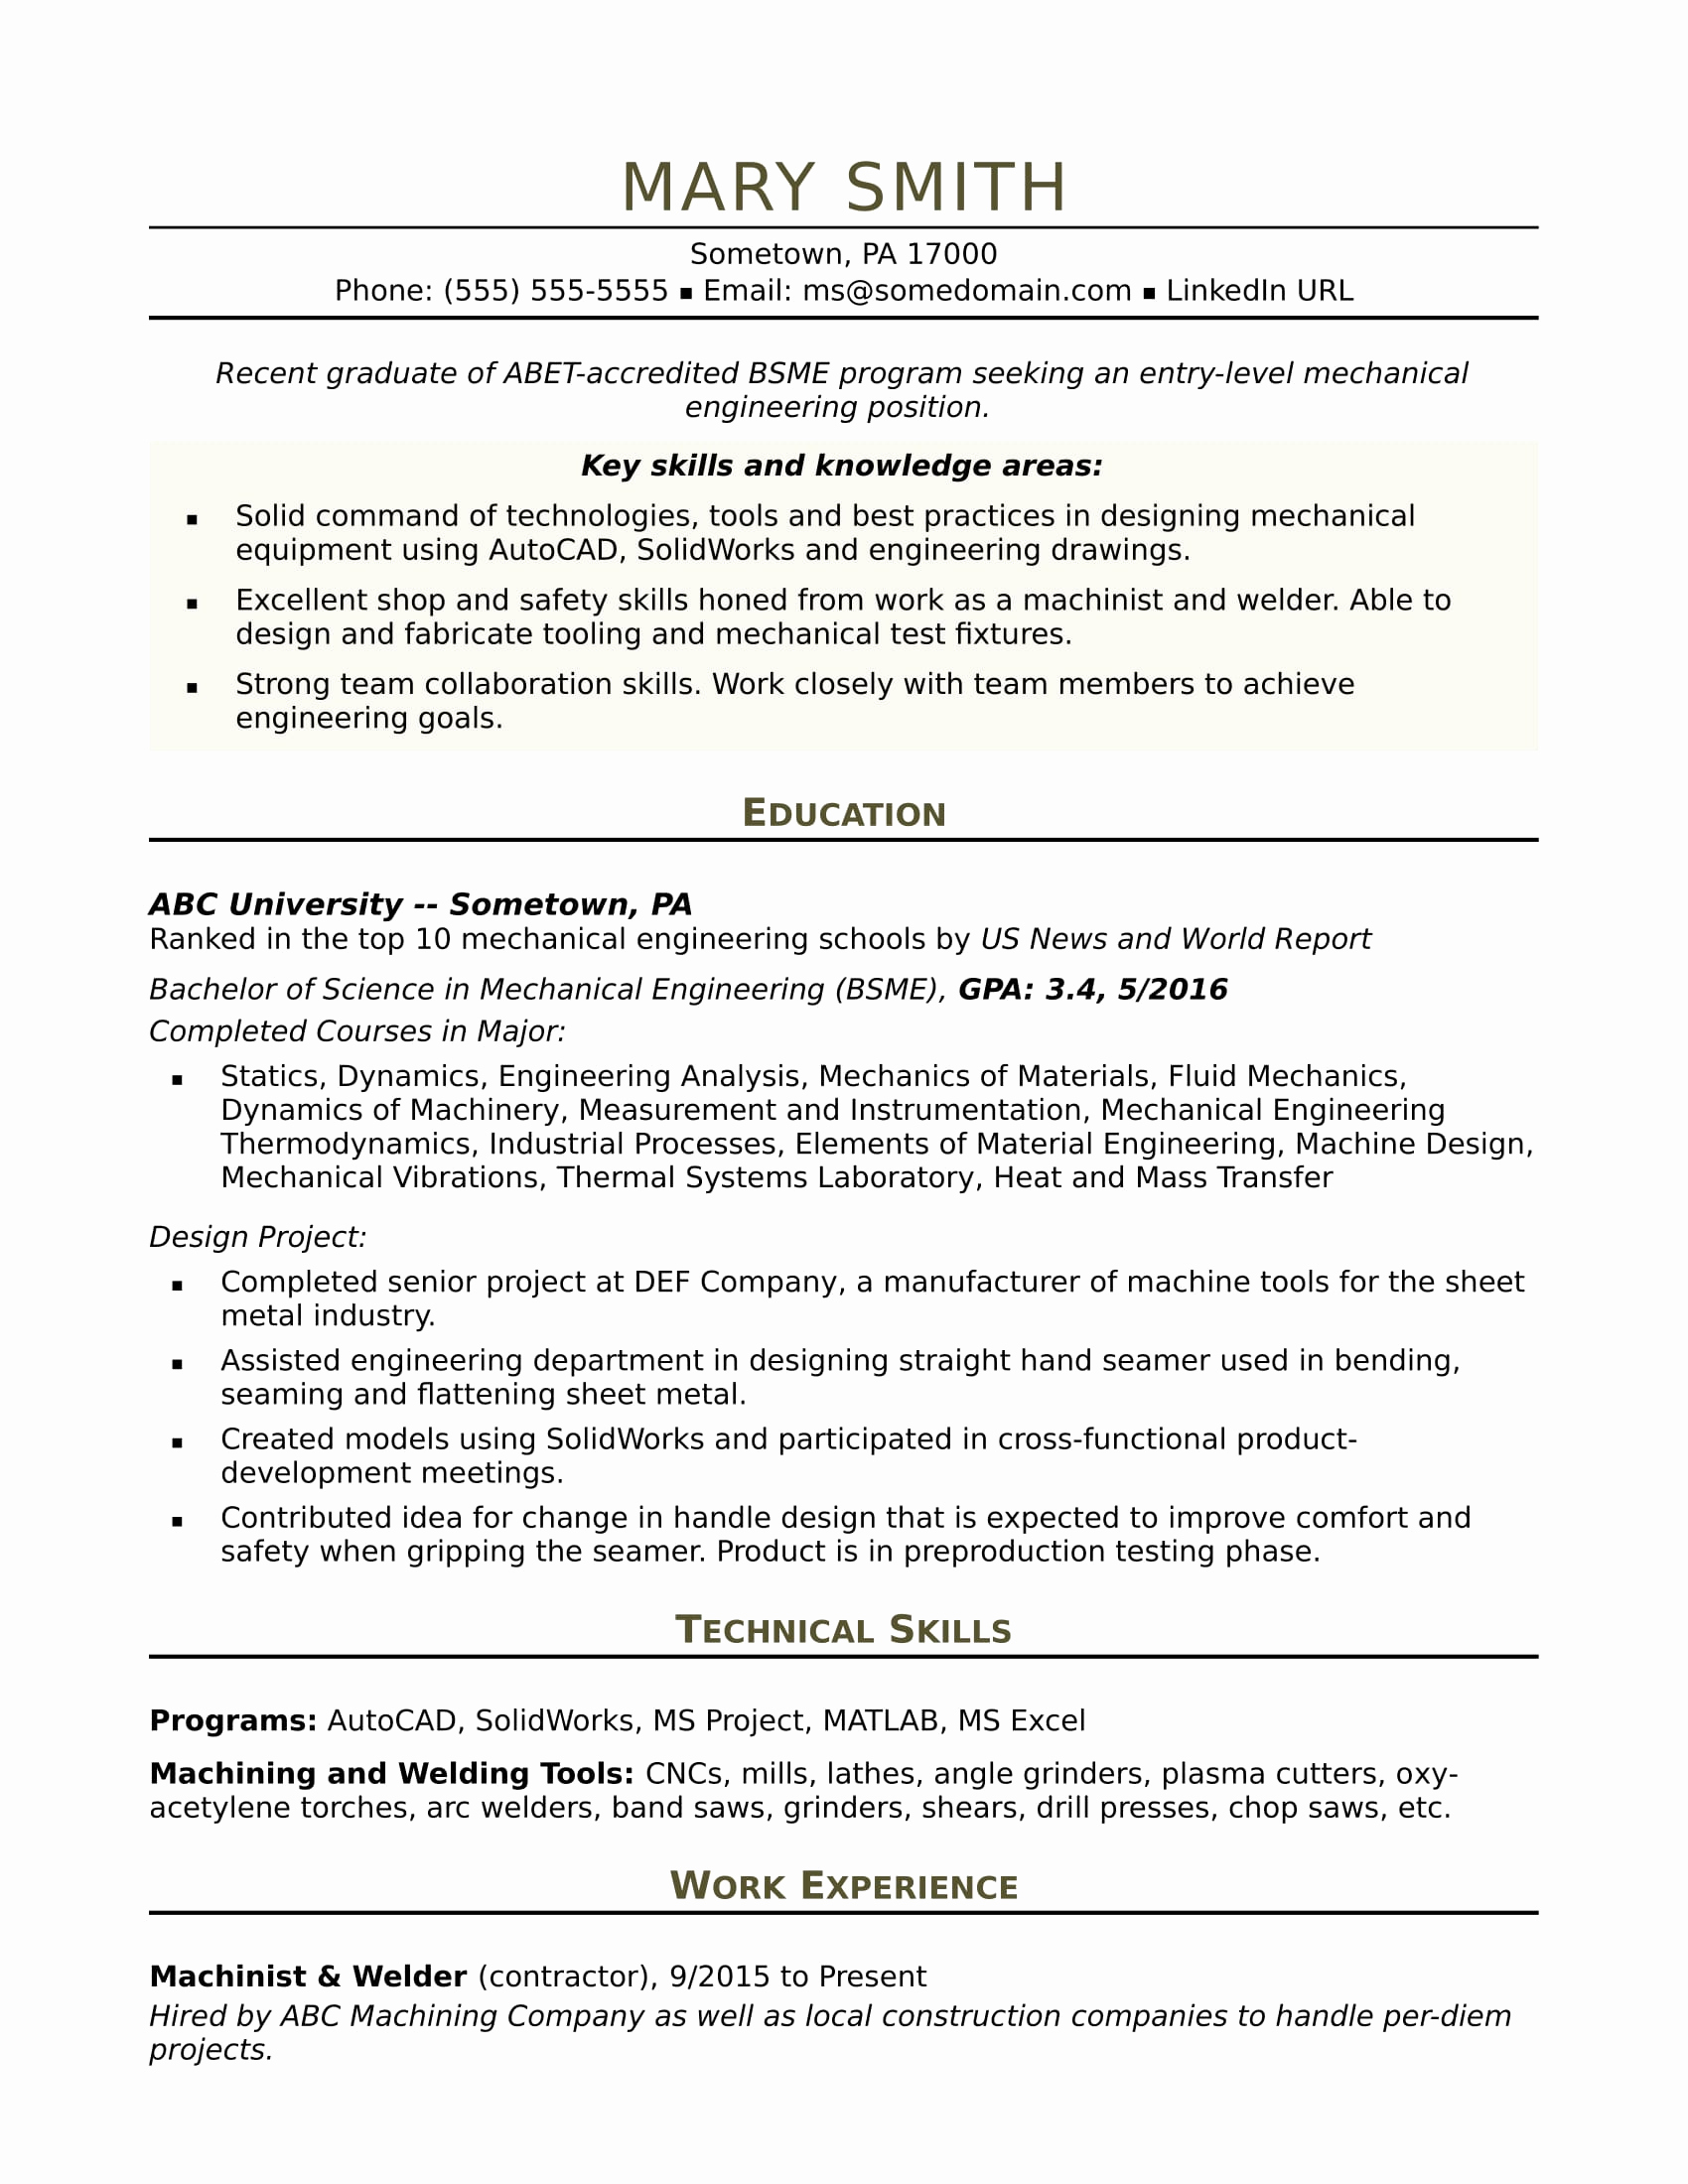 Mechanical Engineer Resume Sample Luxury Sample Resume for An Entry Level Mechanical Engineer